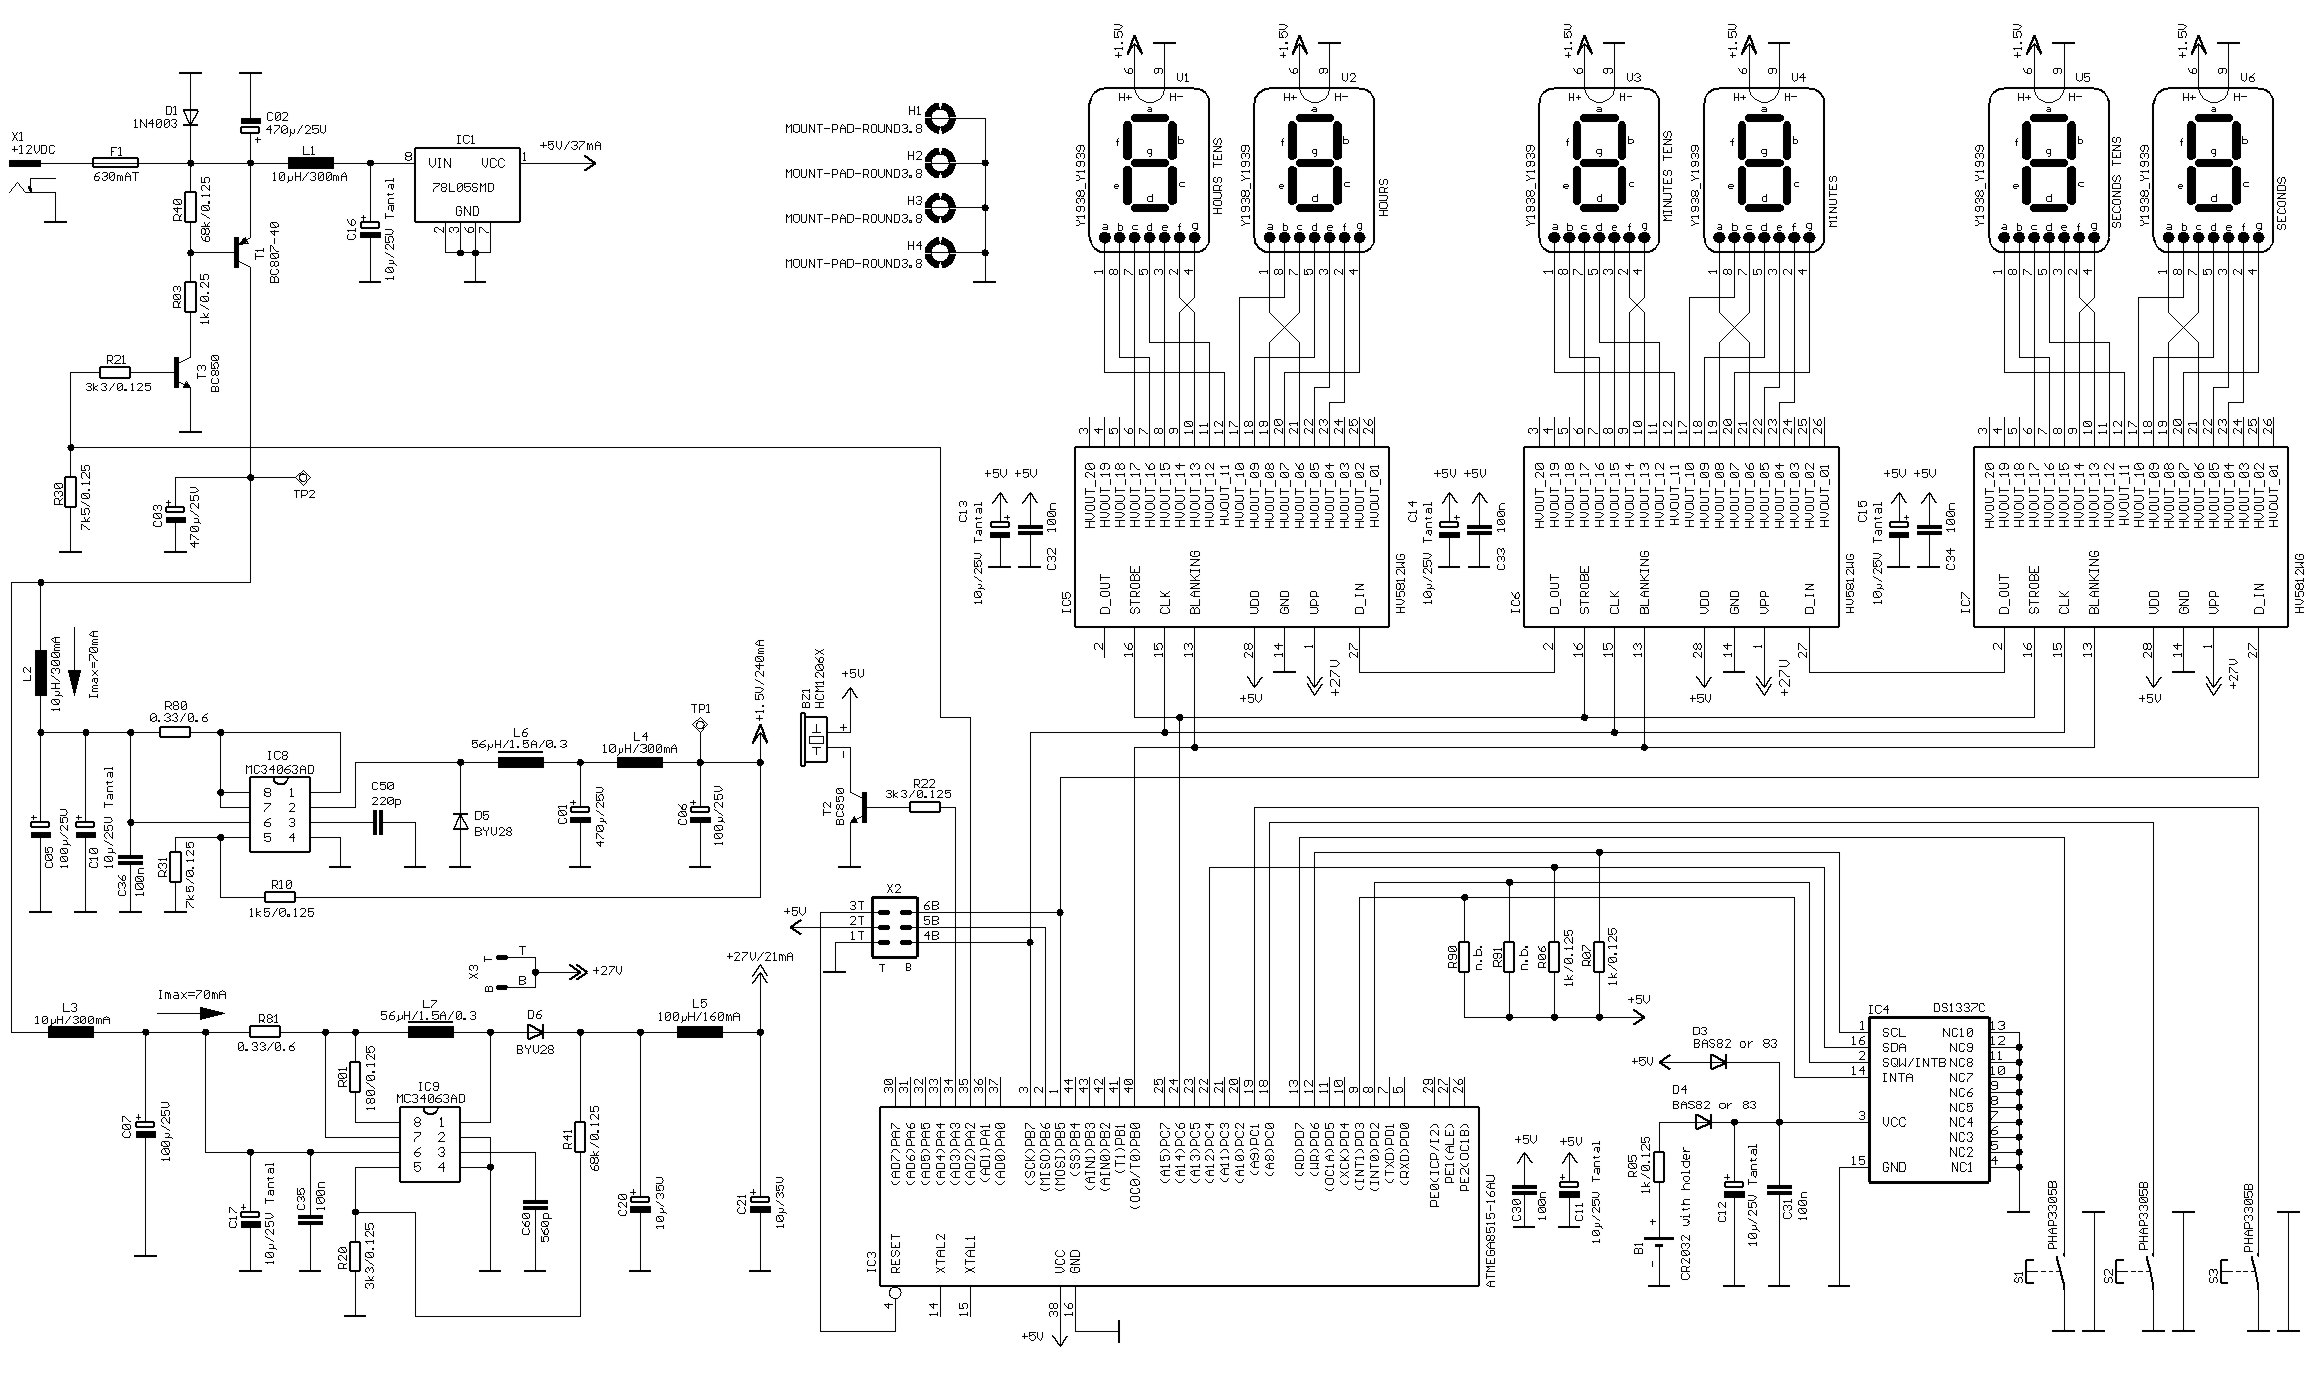 Lutron Dimmer Wire Diagram